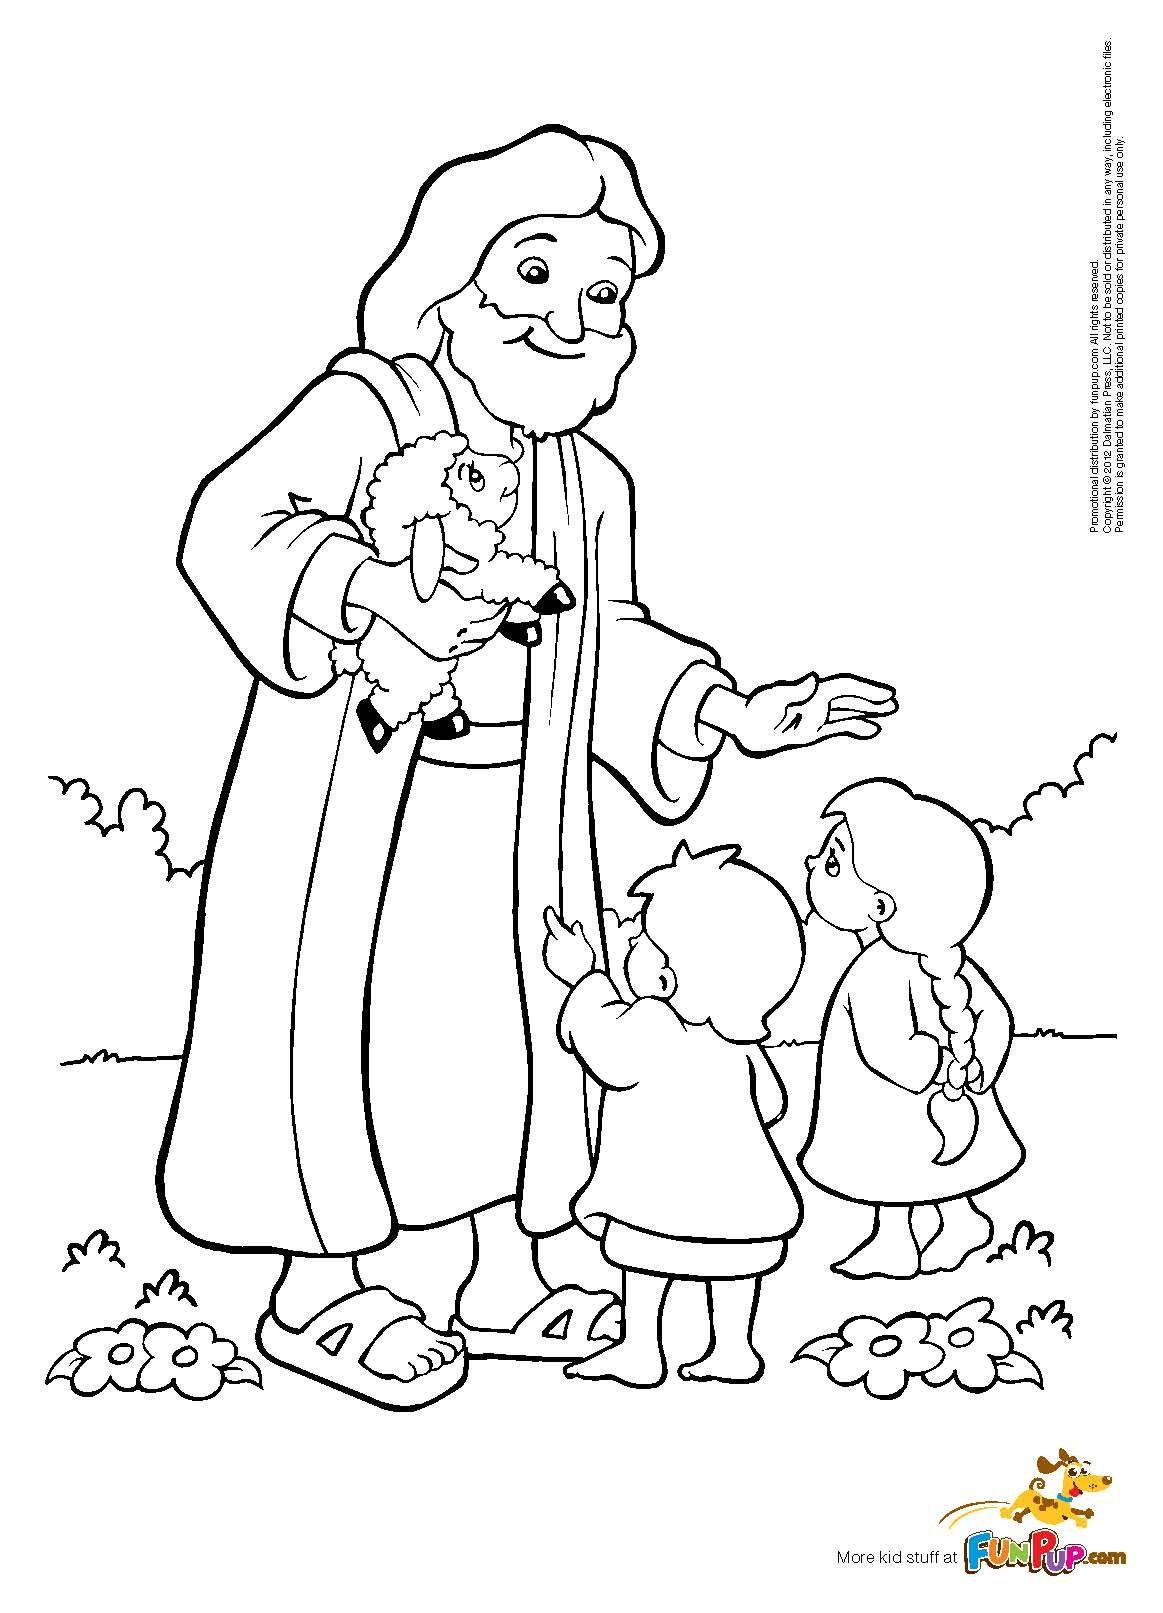 Coloring Pages Of Jesus Amusing Jesus Loves Me  Jesus Love Me And The Other Children Too Inspiration Design